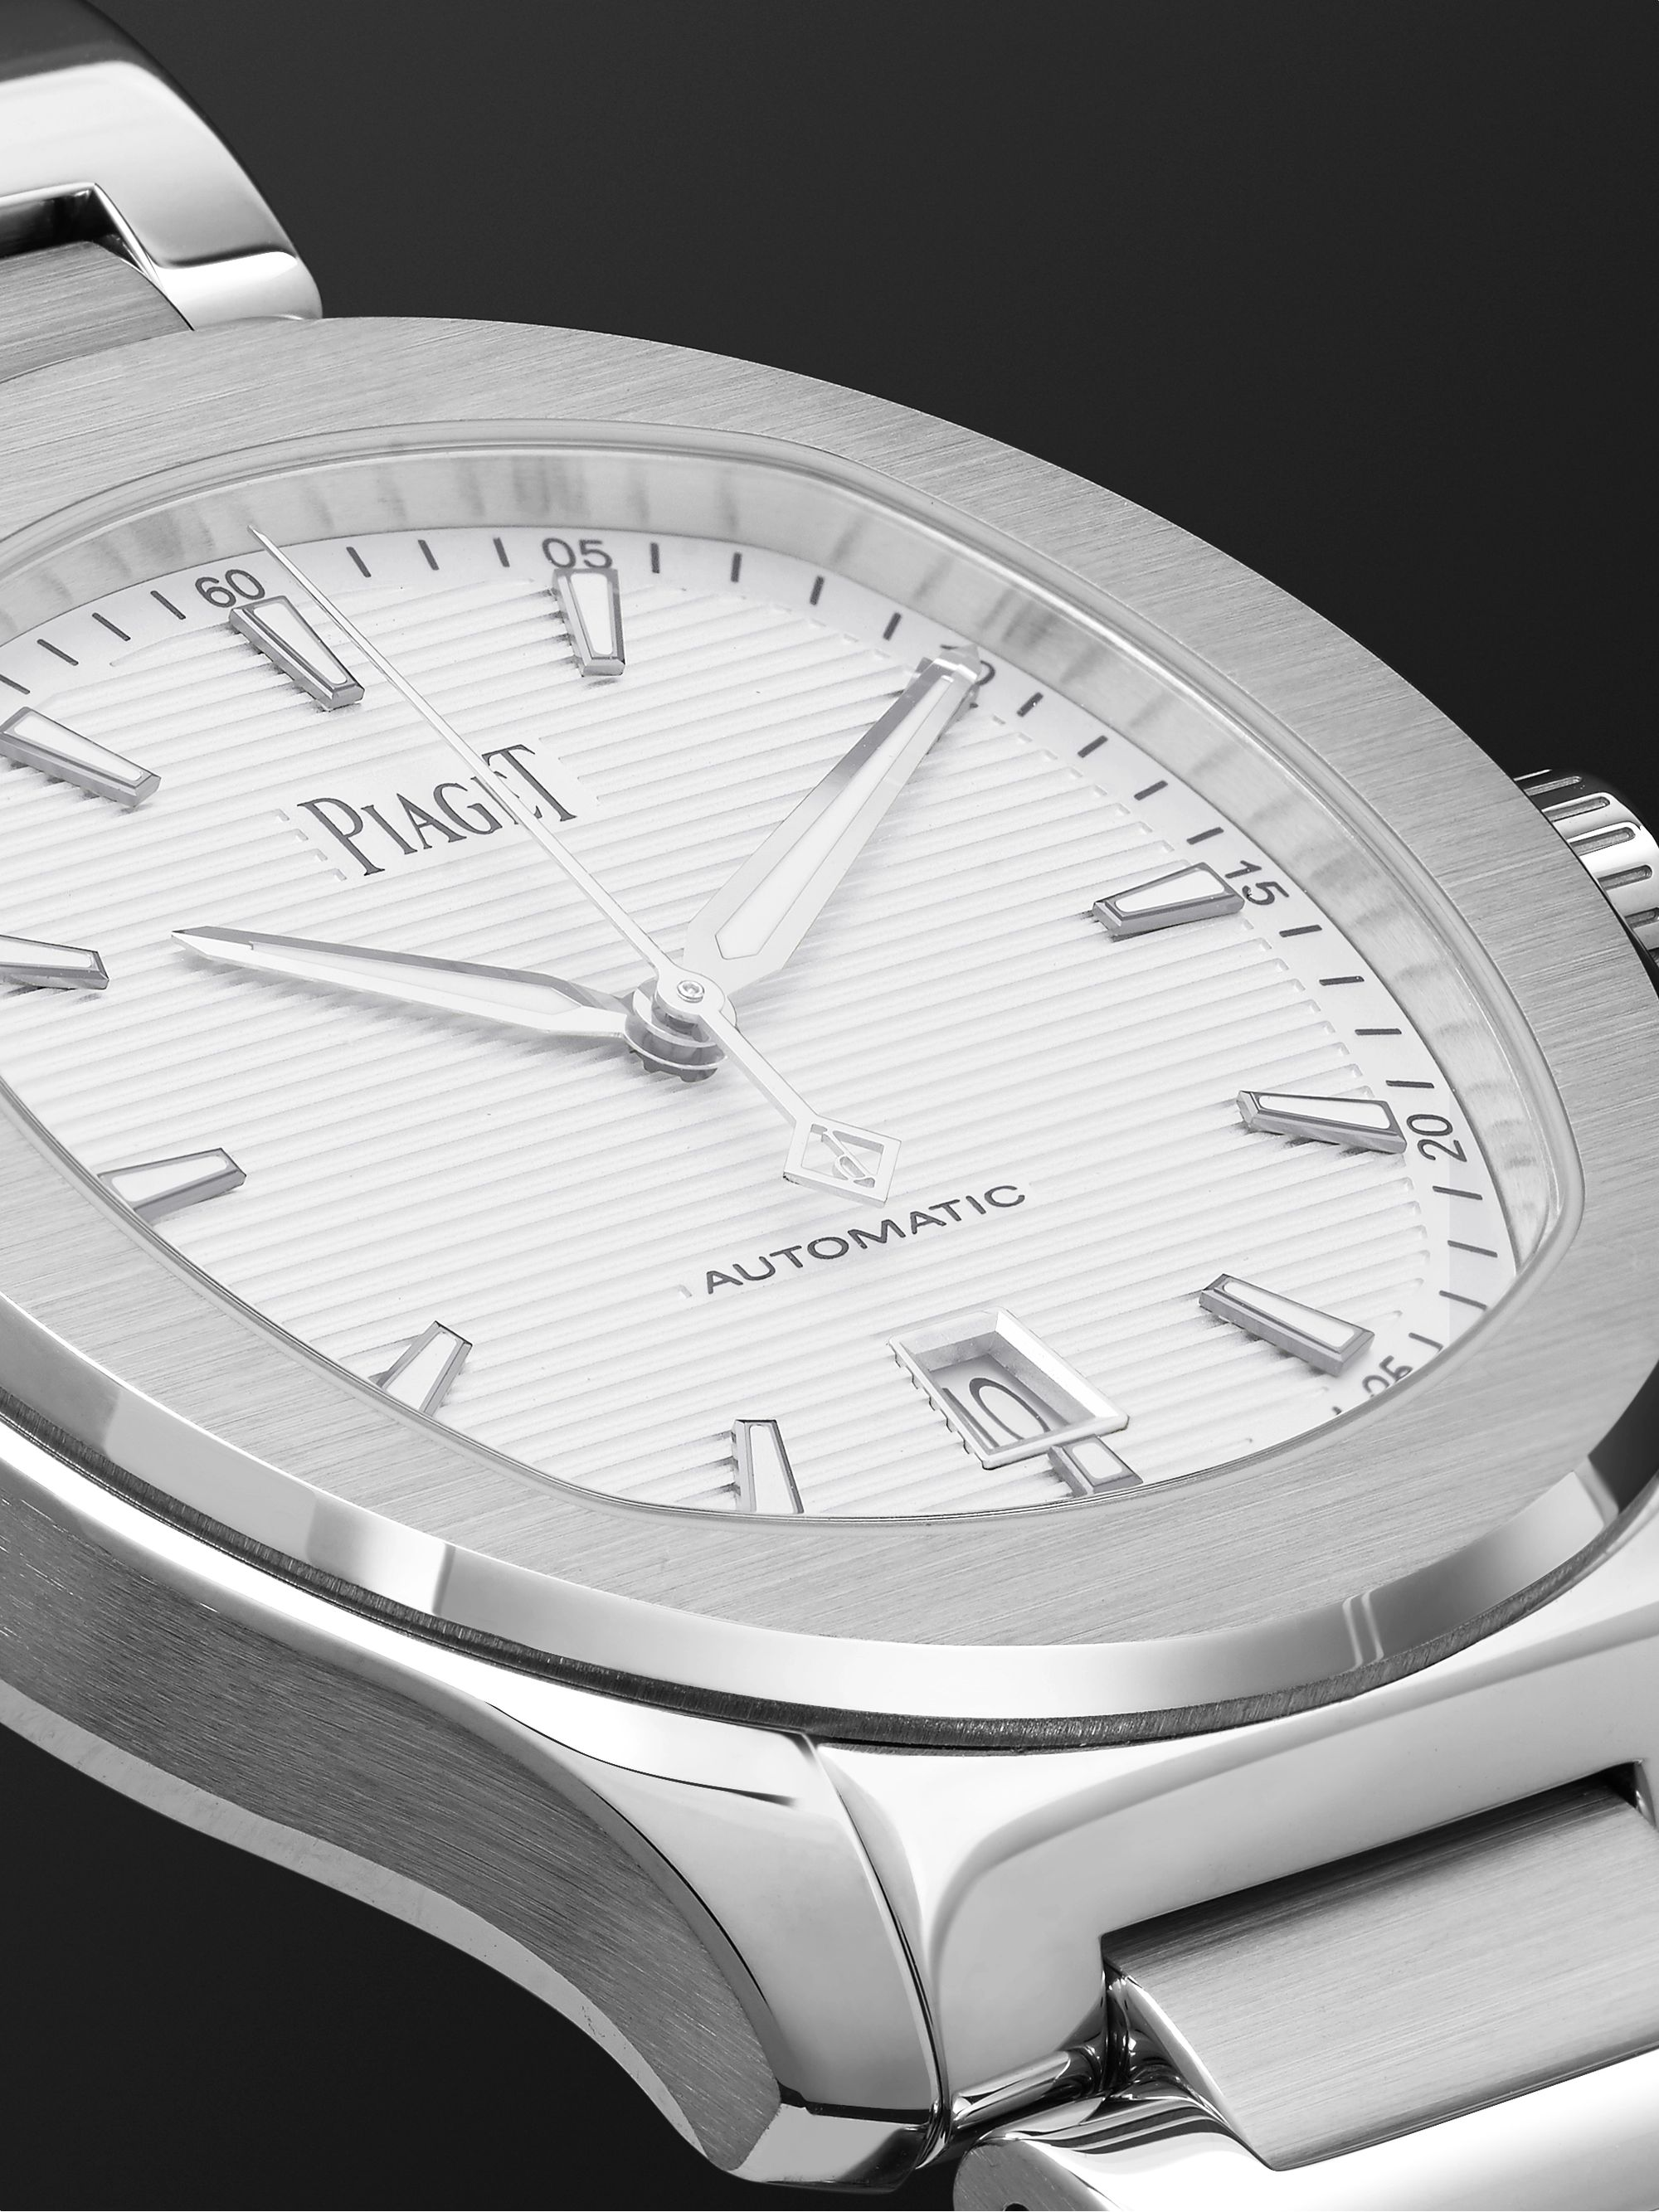 Piaget Polo S Automatic 42mm Stainless Steel Watch, Ref. No. G0A41001